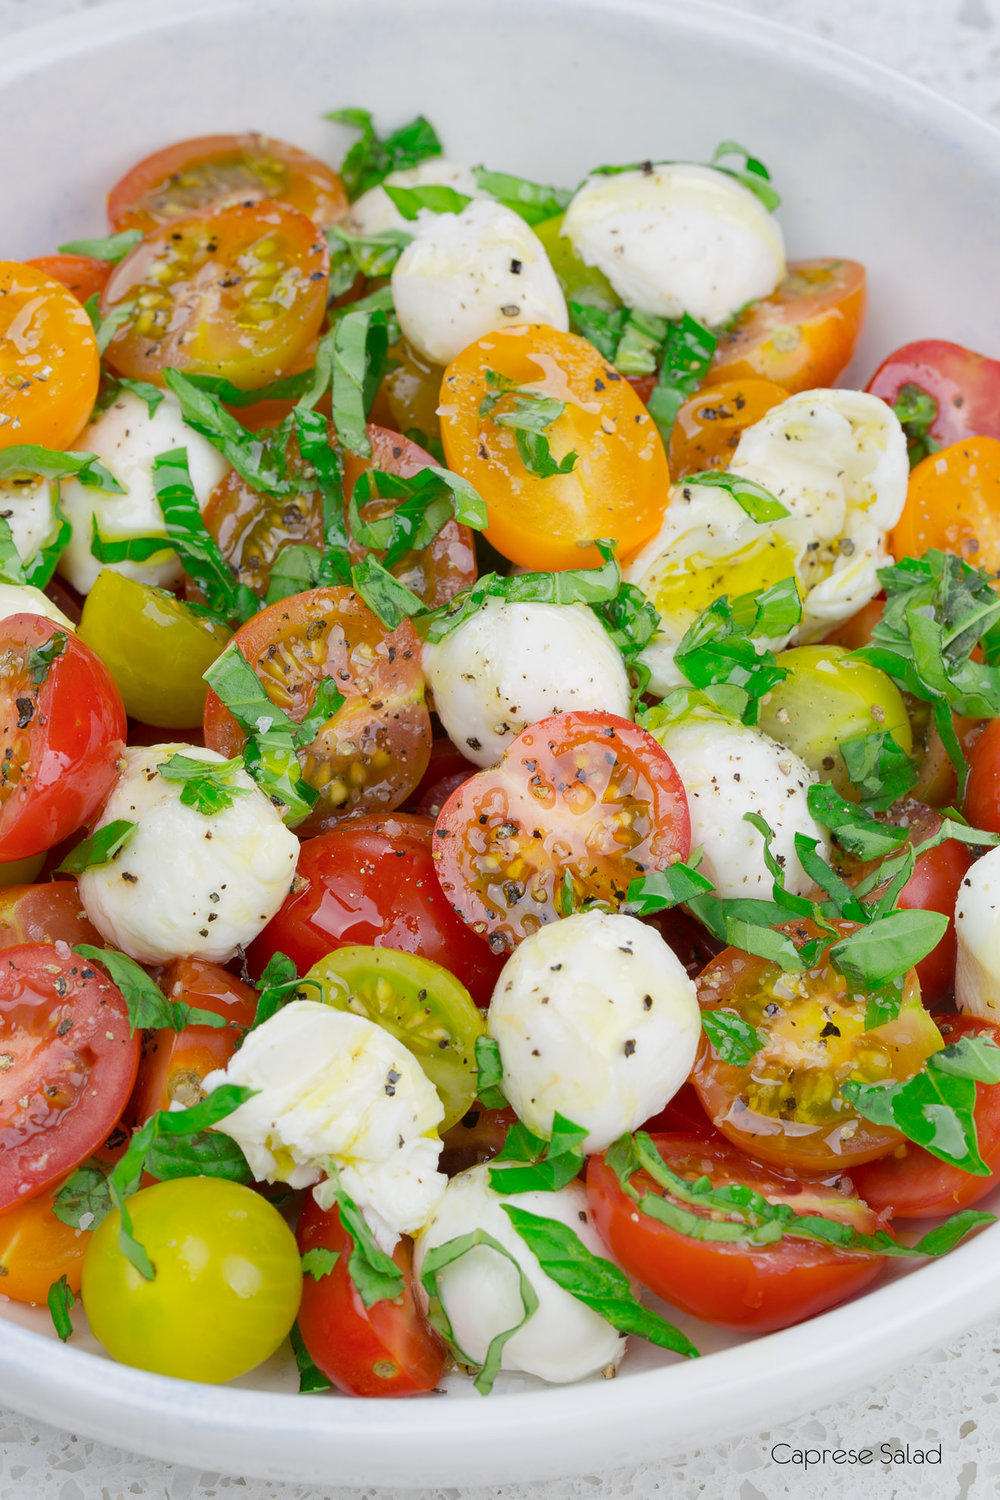 Caprese-Salad-Eat-Drink-Binge-1.jpg